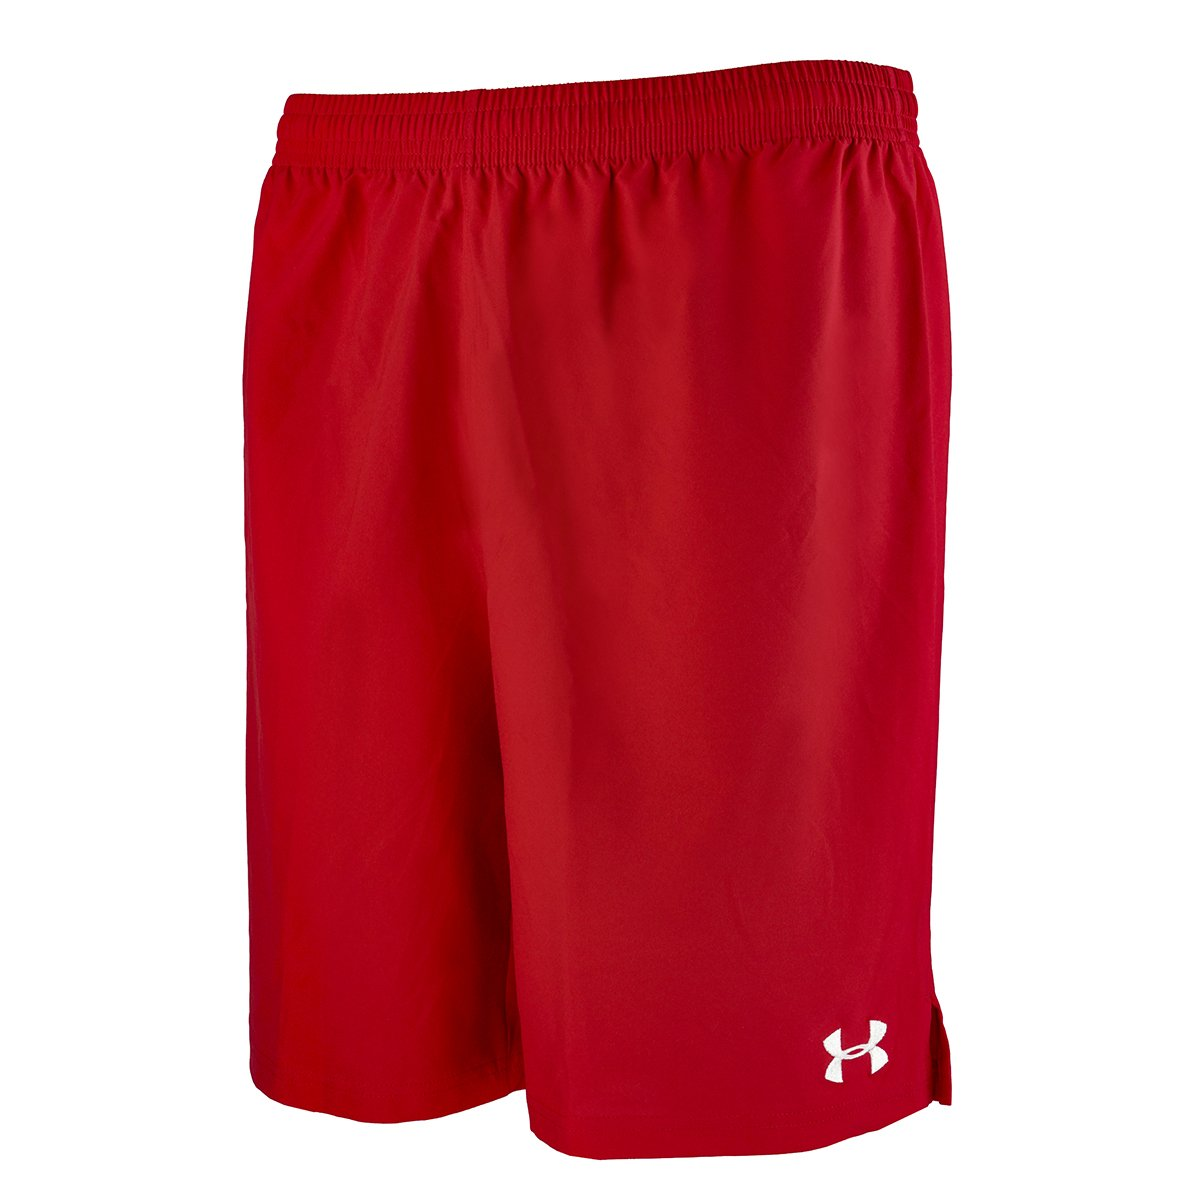 Under ArmourメンズHustle Soccer Shorts B00Y2T6Q7G XL|レッド レッド XL